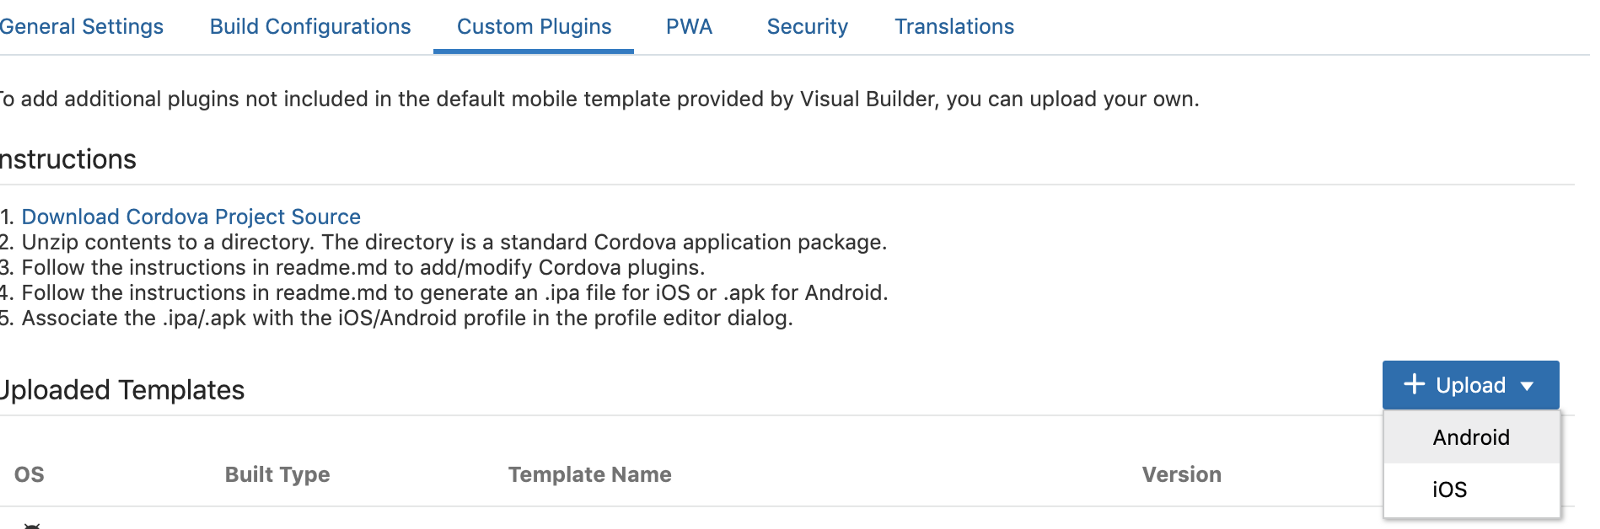 Media Capture using Oracle Visual Builder for Facial